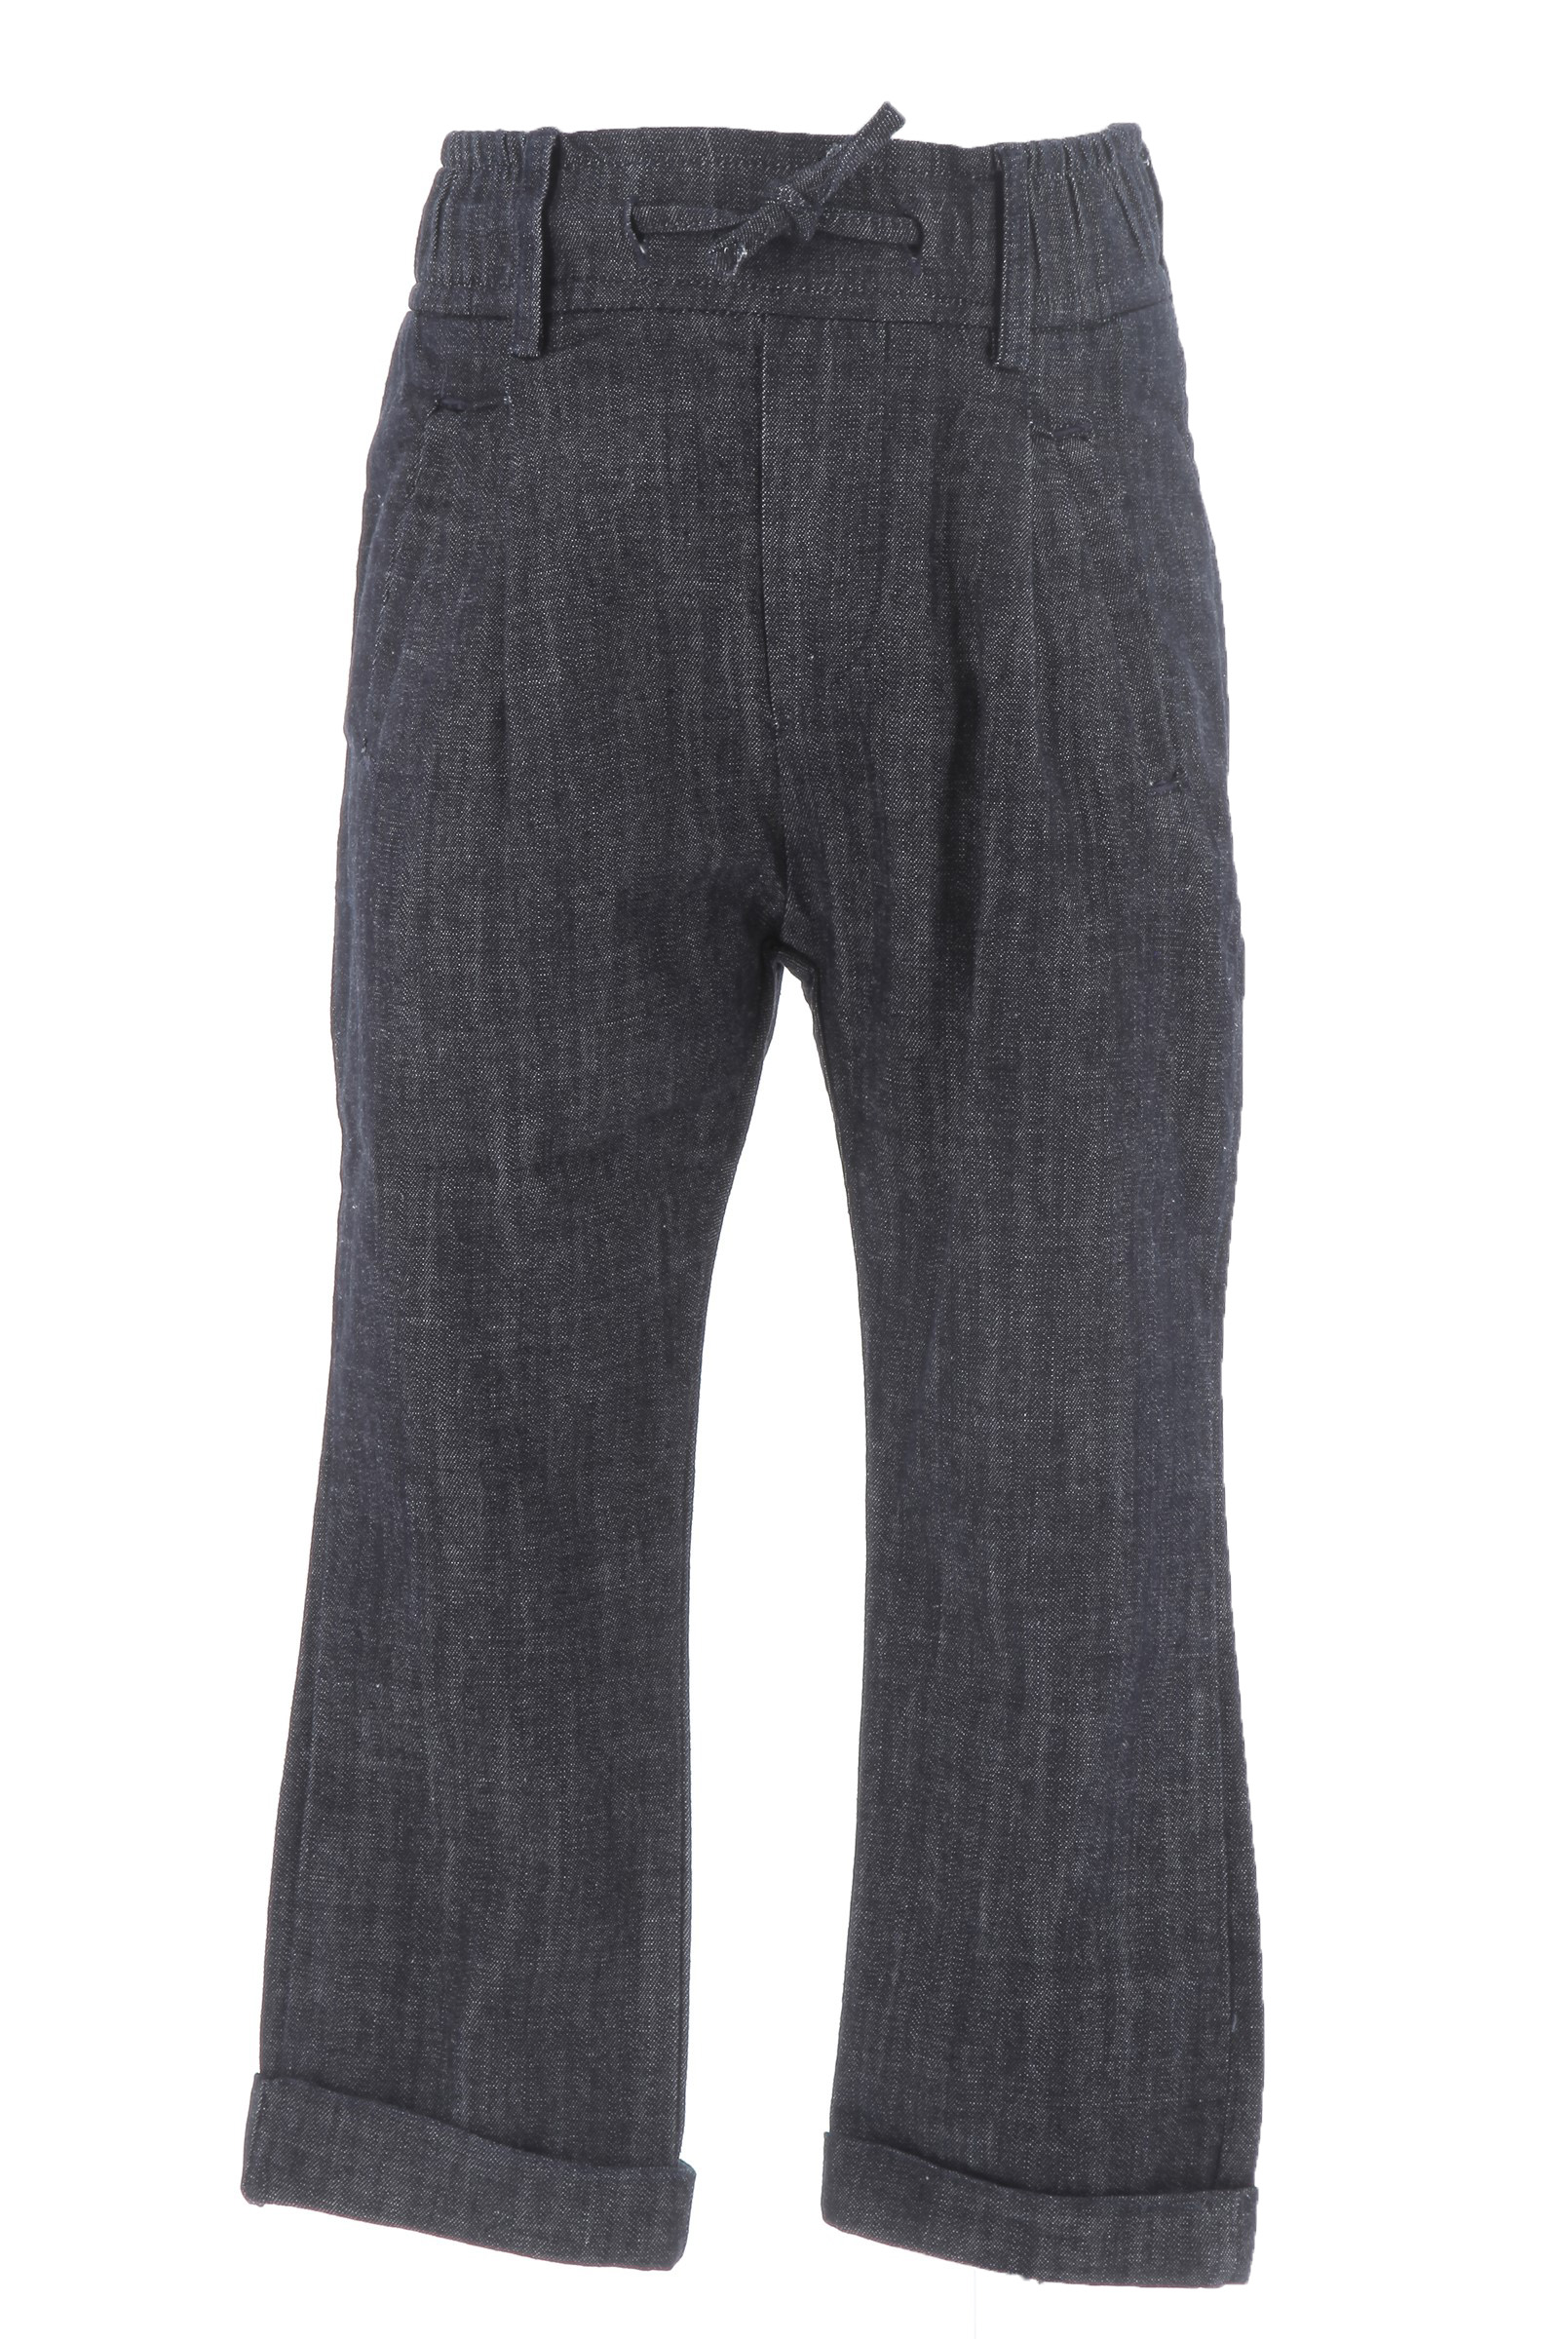 Paolo Pecora  pantaloni PAOLO PECORA | Pantaloni | PP2298JEANS